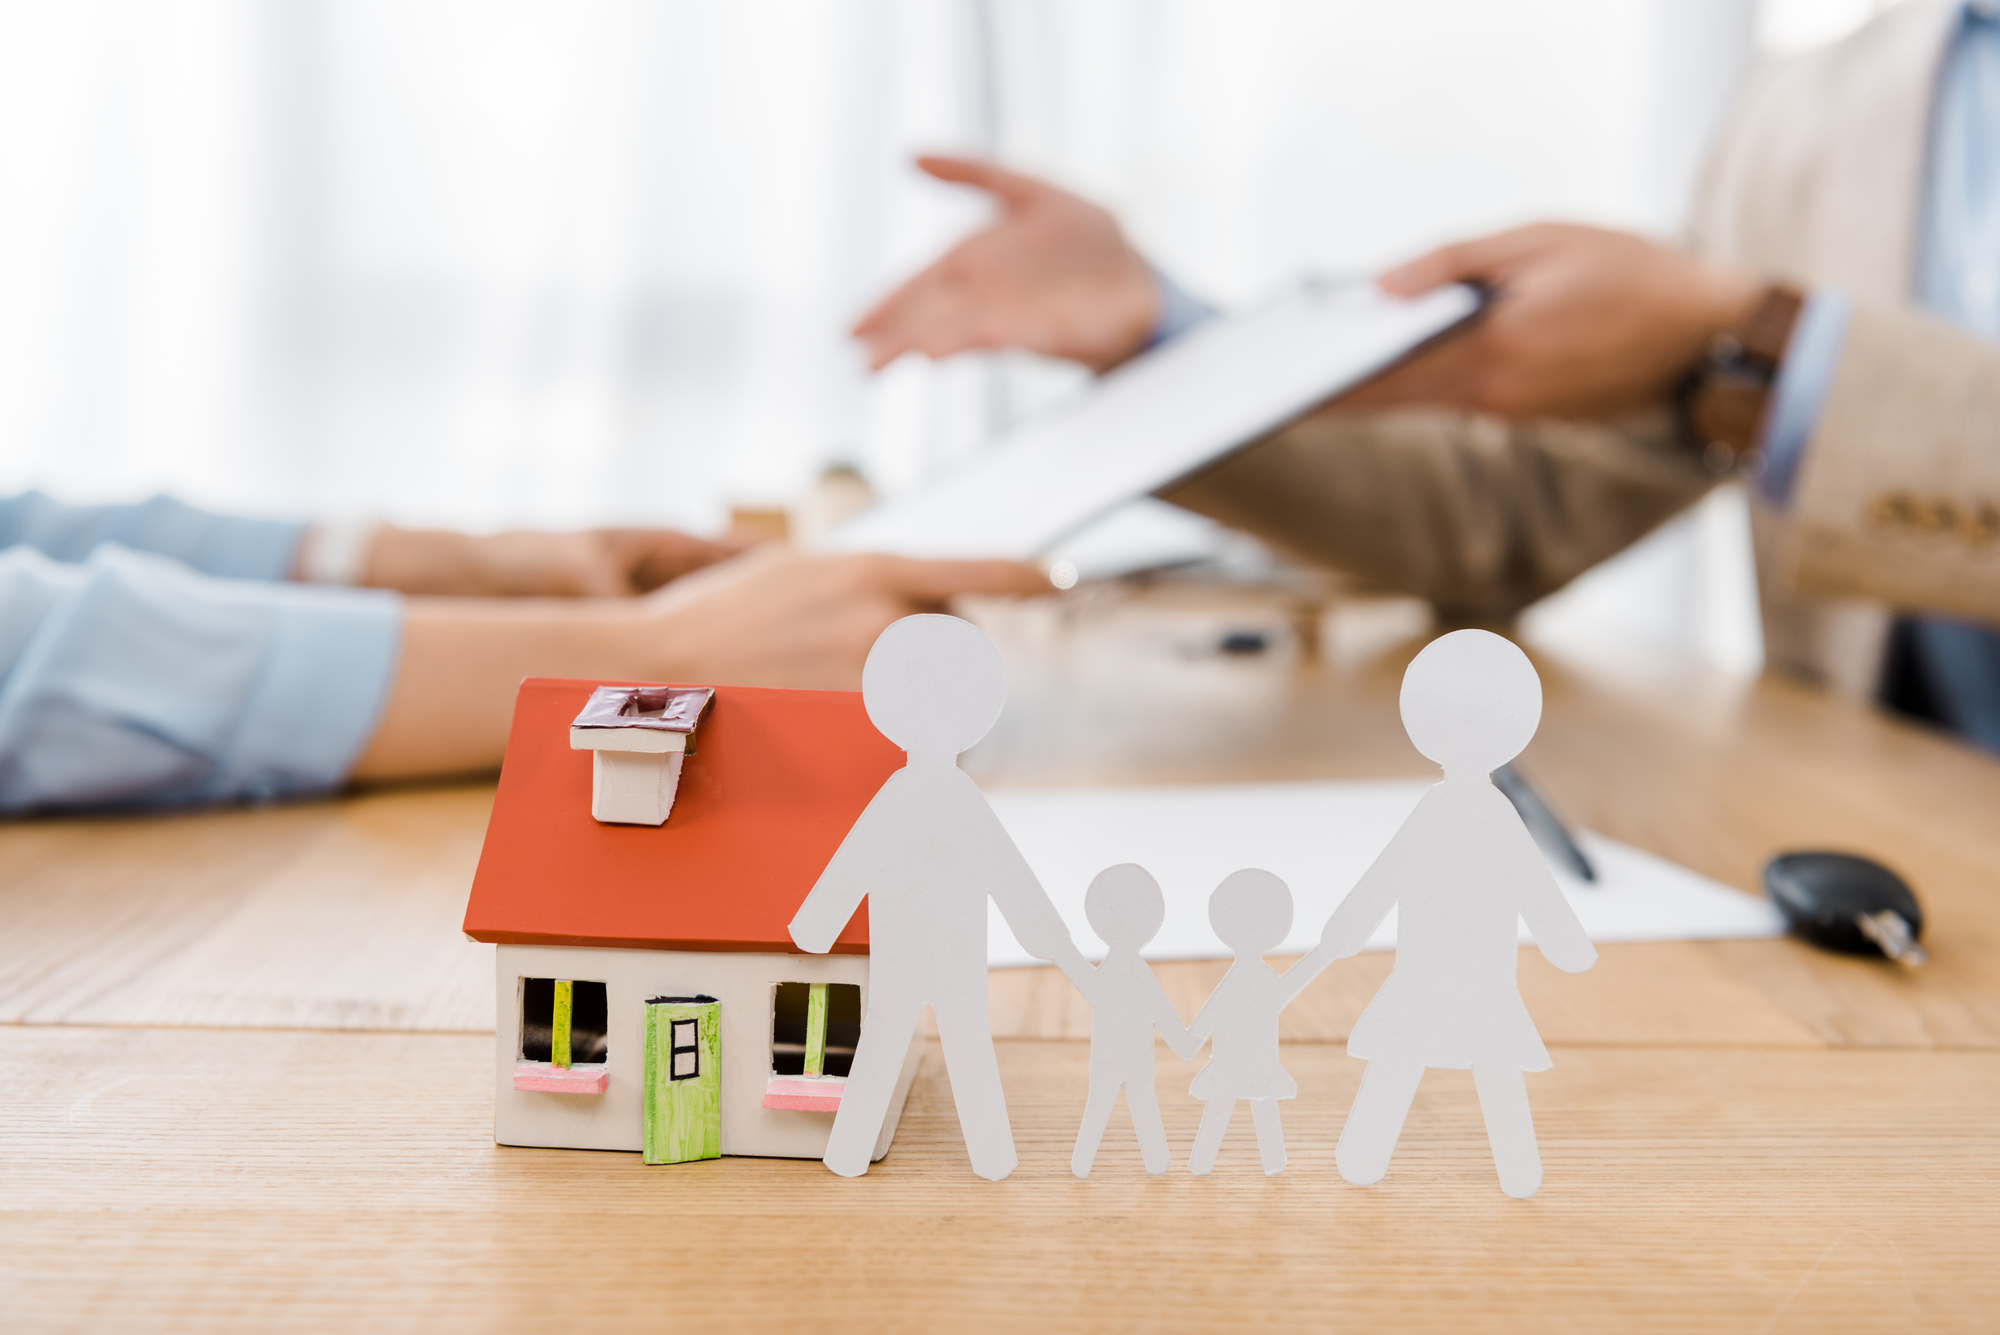 What Reasonable Accommodations and Modifications Do You Need to Make? Barrier Islands Property Management